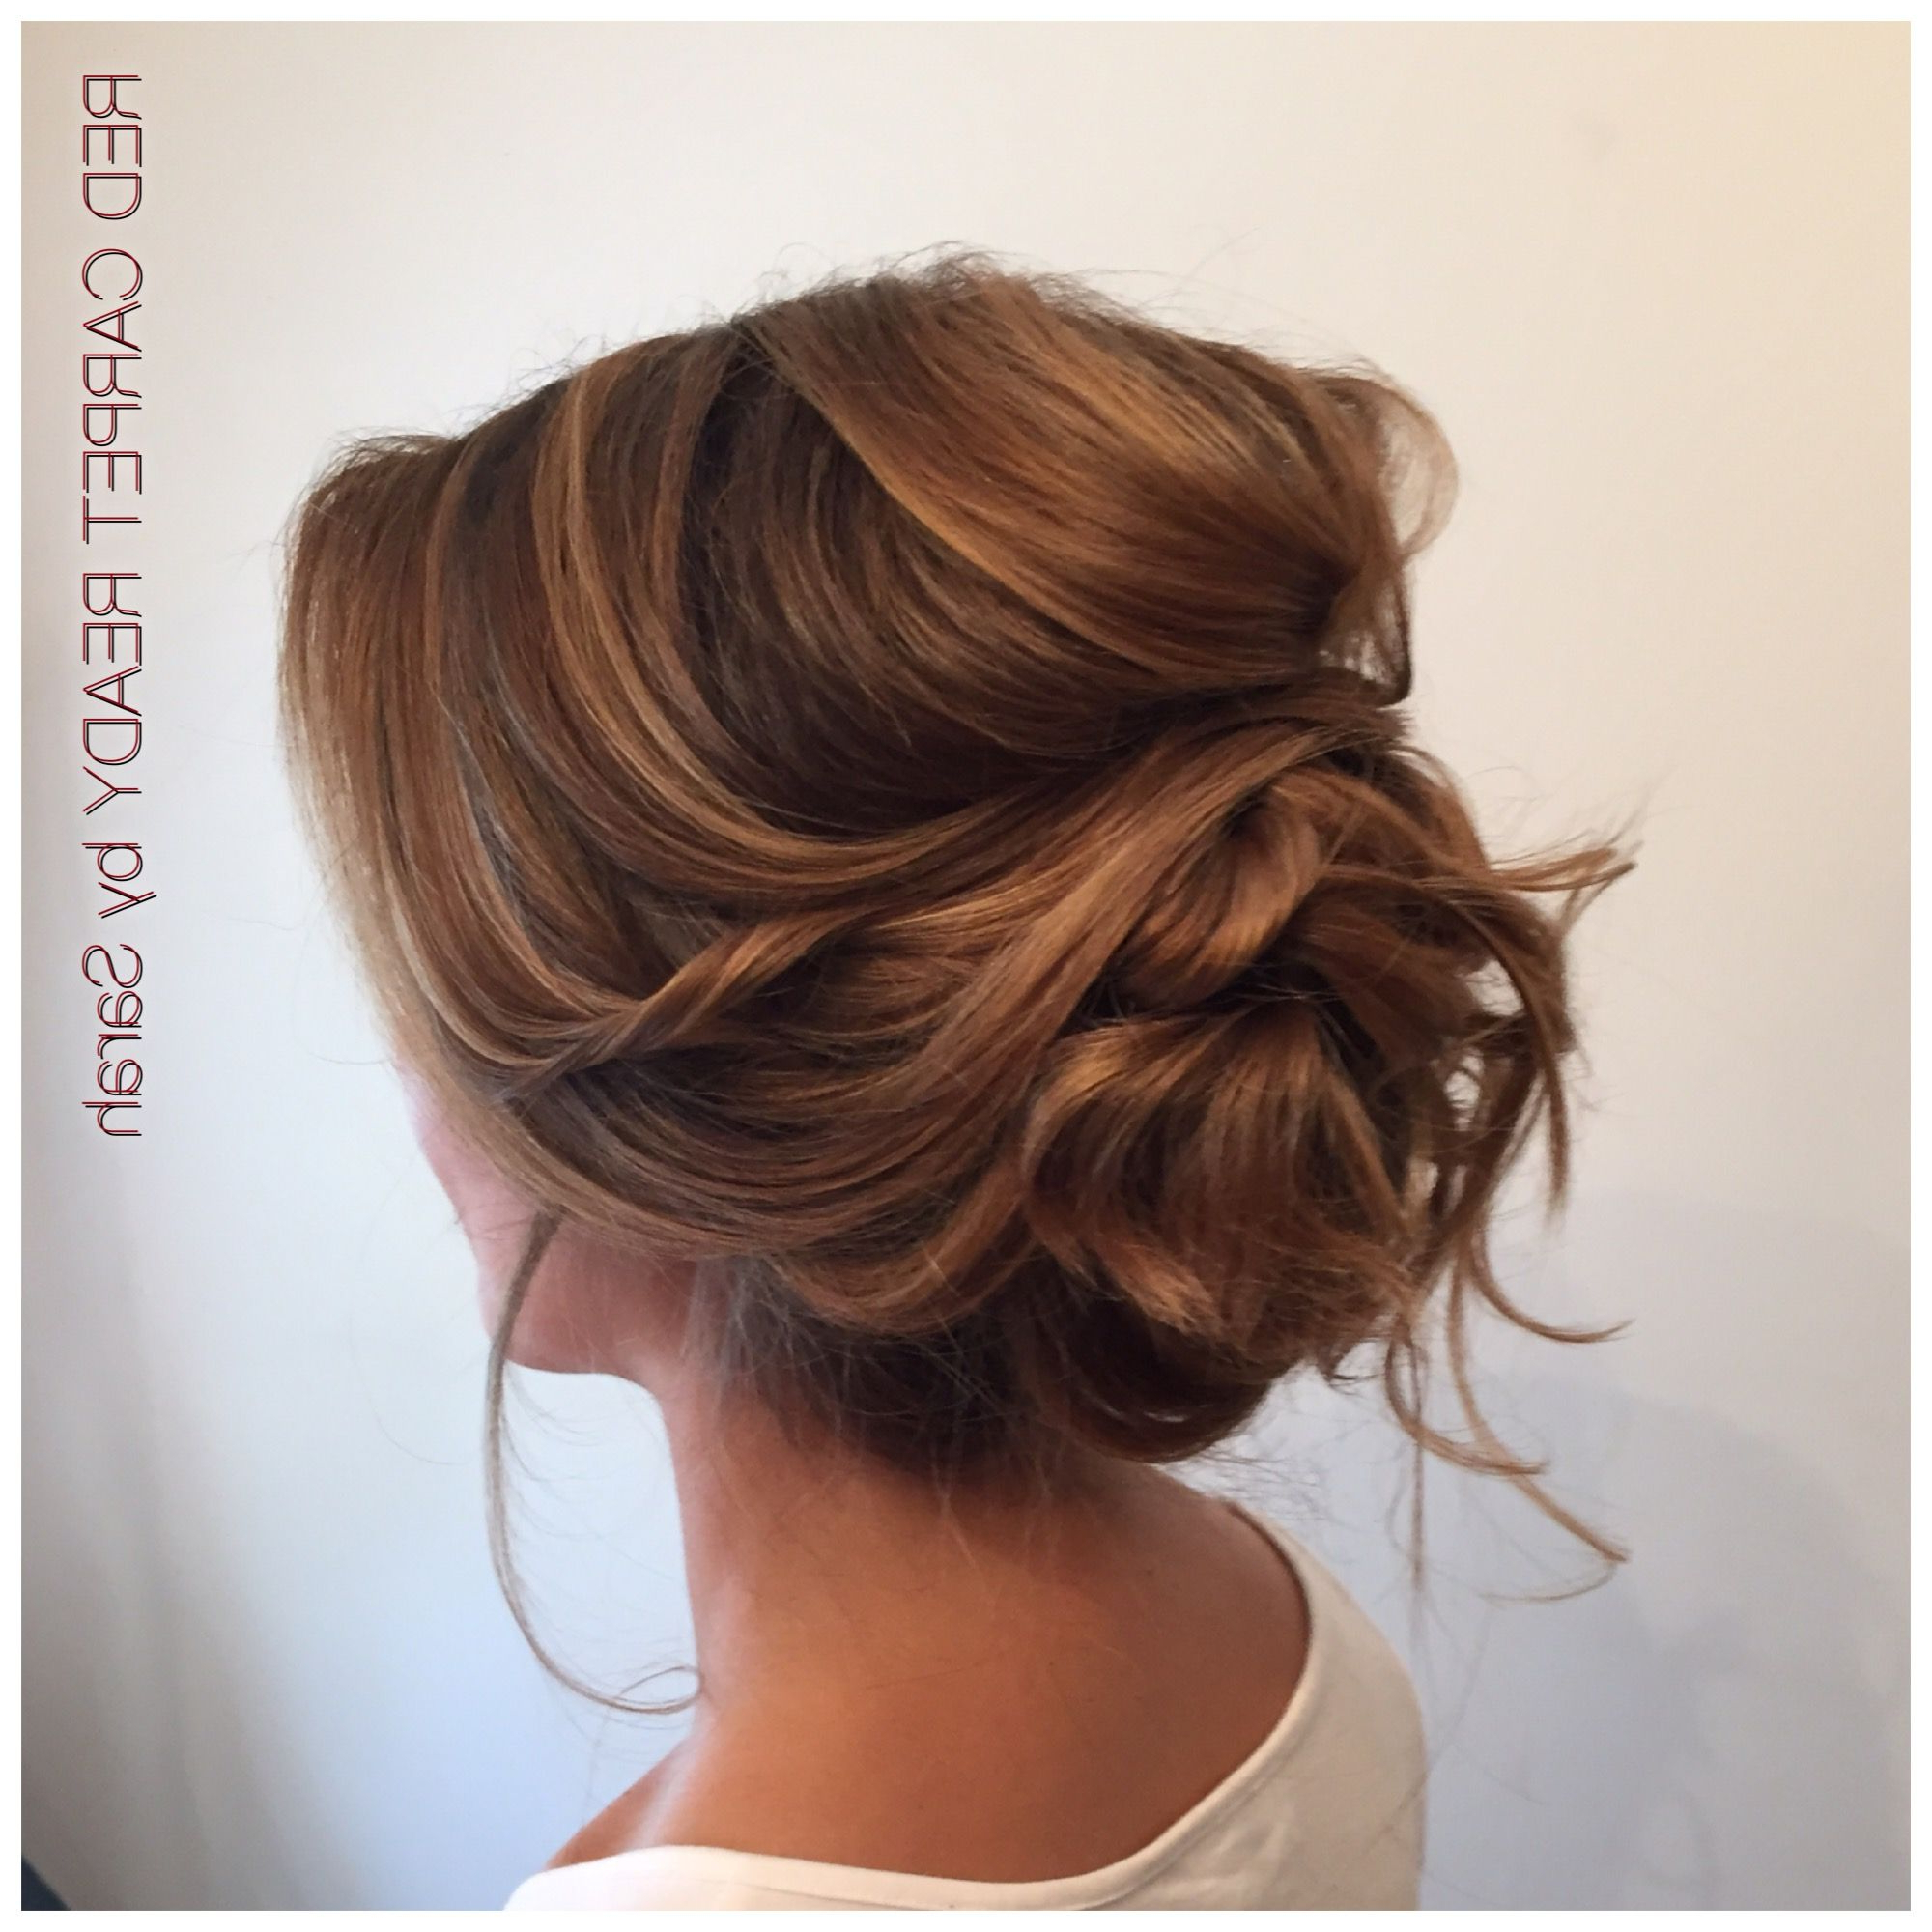 [%latest Sleek And Voluminous Beehive Bridal Hairstyles Inside Soft Low Voluminous Updo Hairme | [hair] Trends | Hair, Hair|soft Low Voluminous Updo Hairme | [hair] Trends | Hair, Hair With Regard To Most Recently Released Sleek And Voluminous Beehive Bridal Hairstyles%] (View 5 of 20)